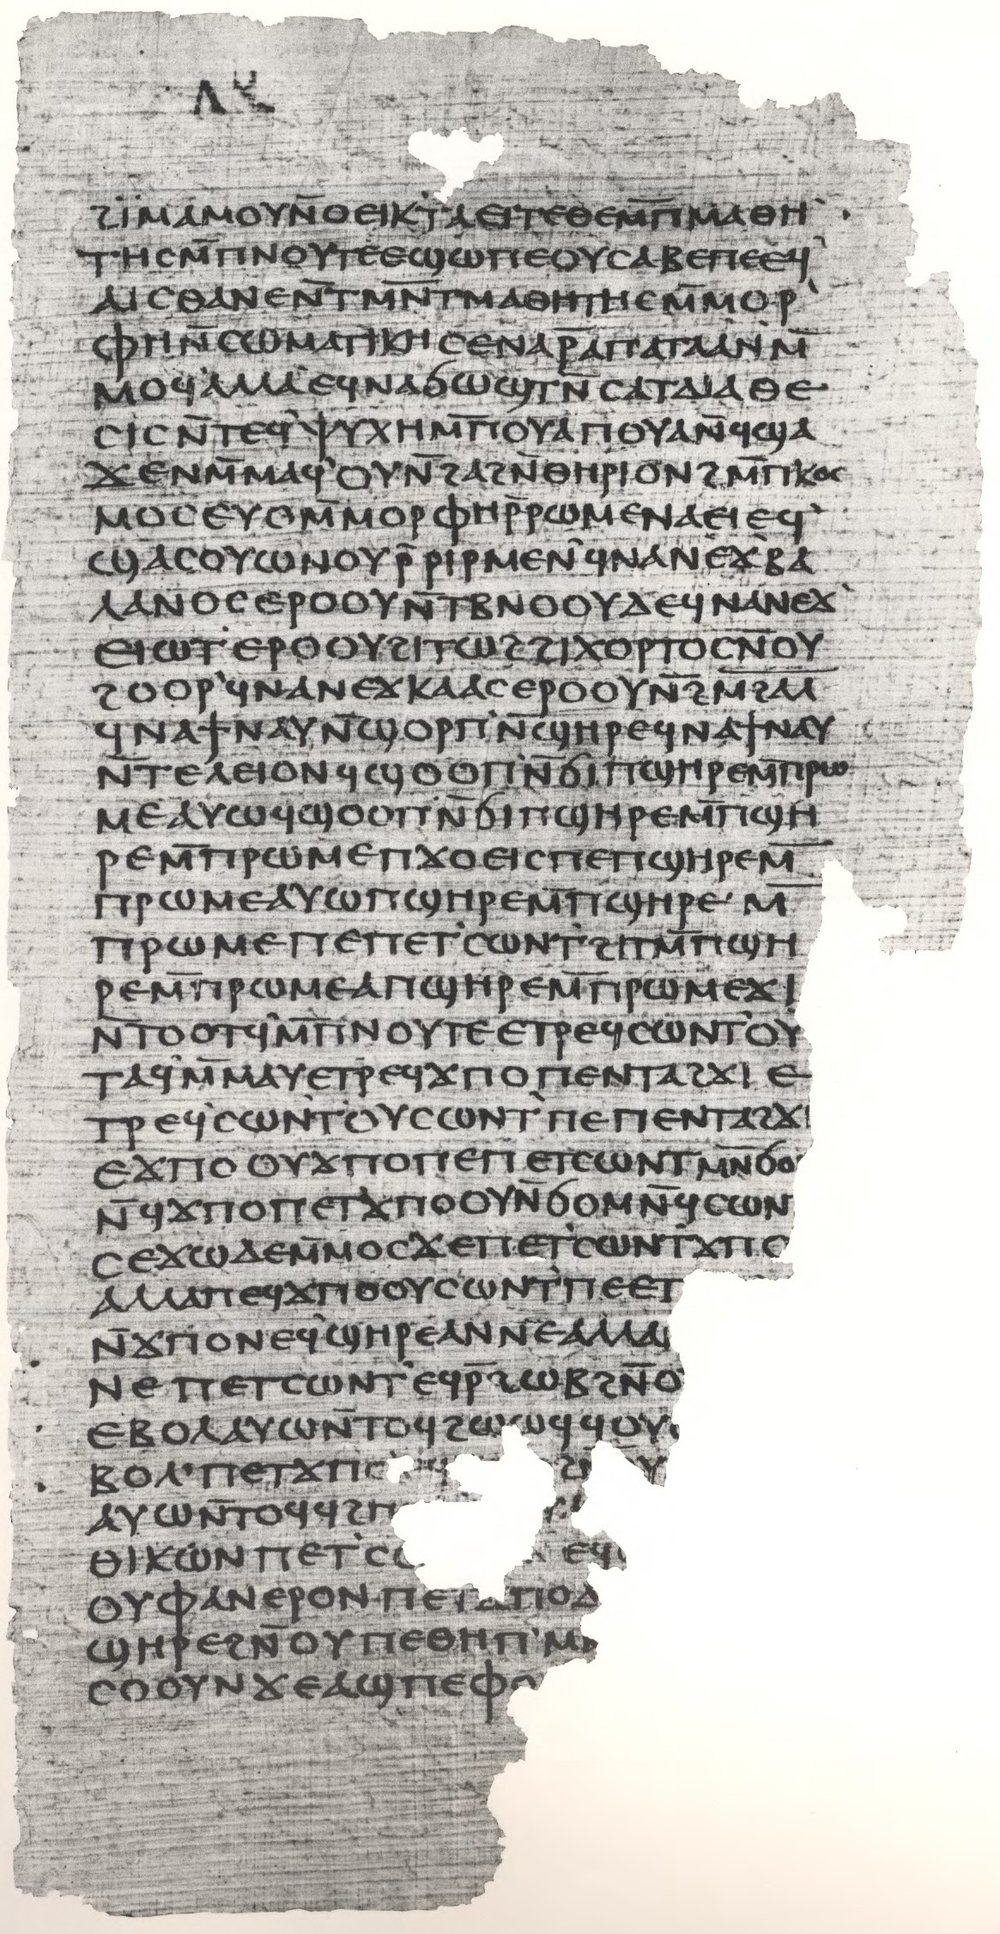 Gospel_of_Philip facsimile_Page_81.jpg